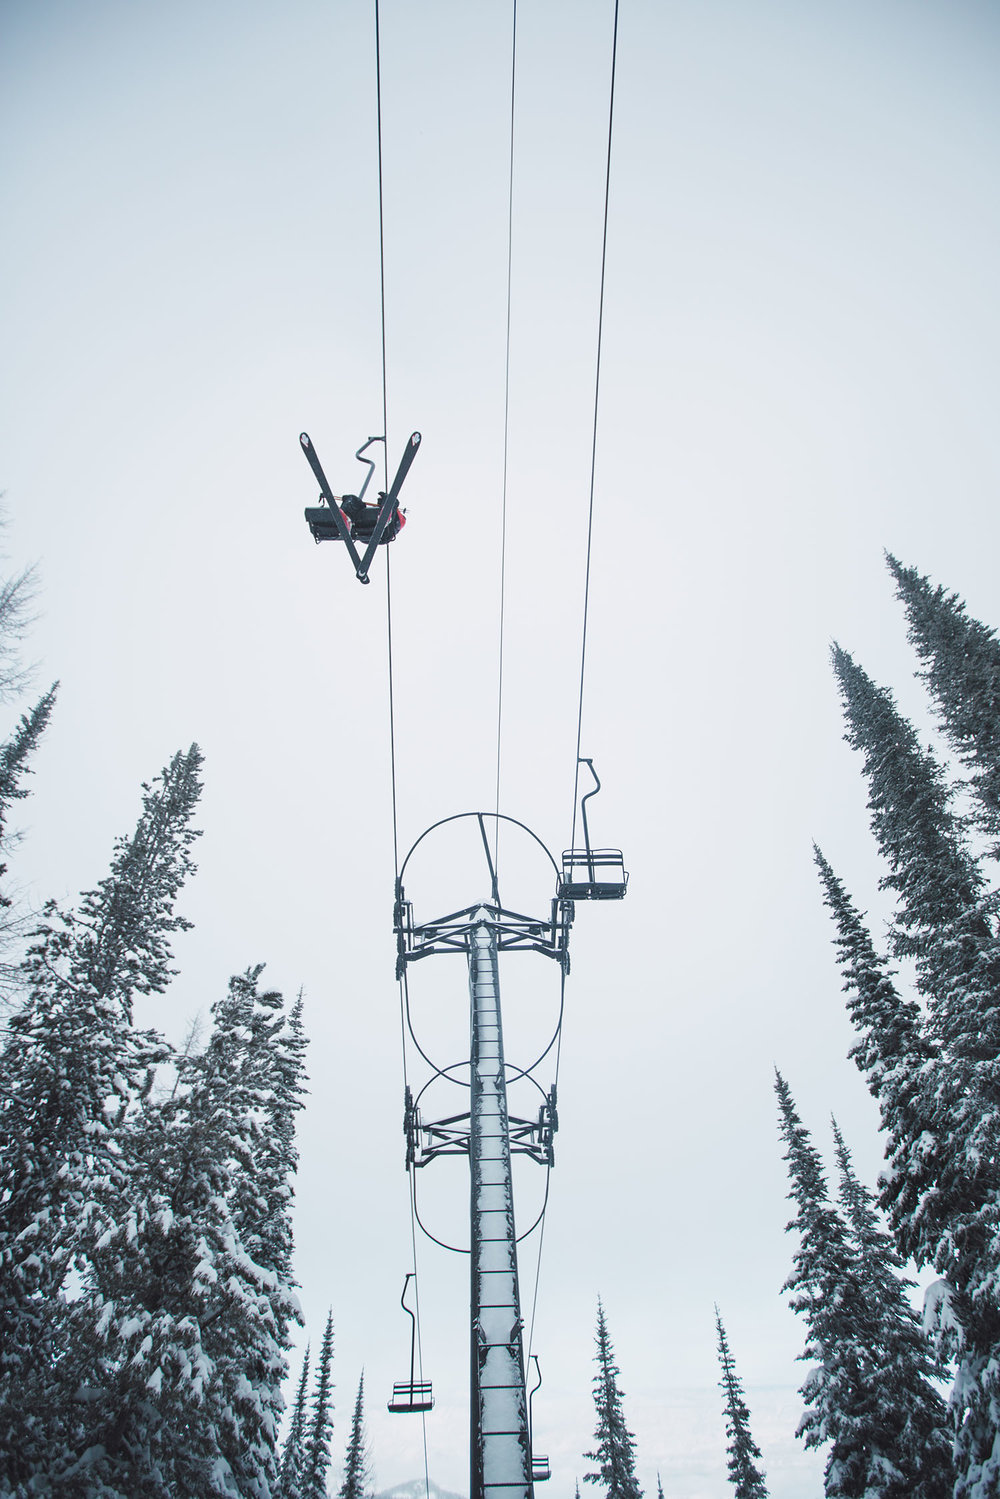 mission-ridge-under-chairlift-winter-snow-skis-skier.jpg